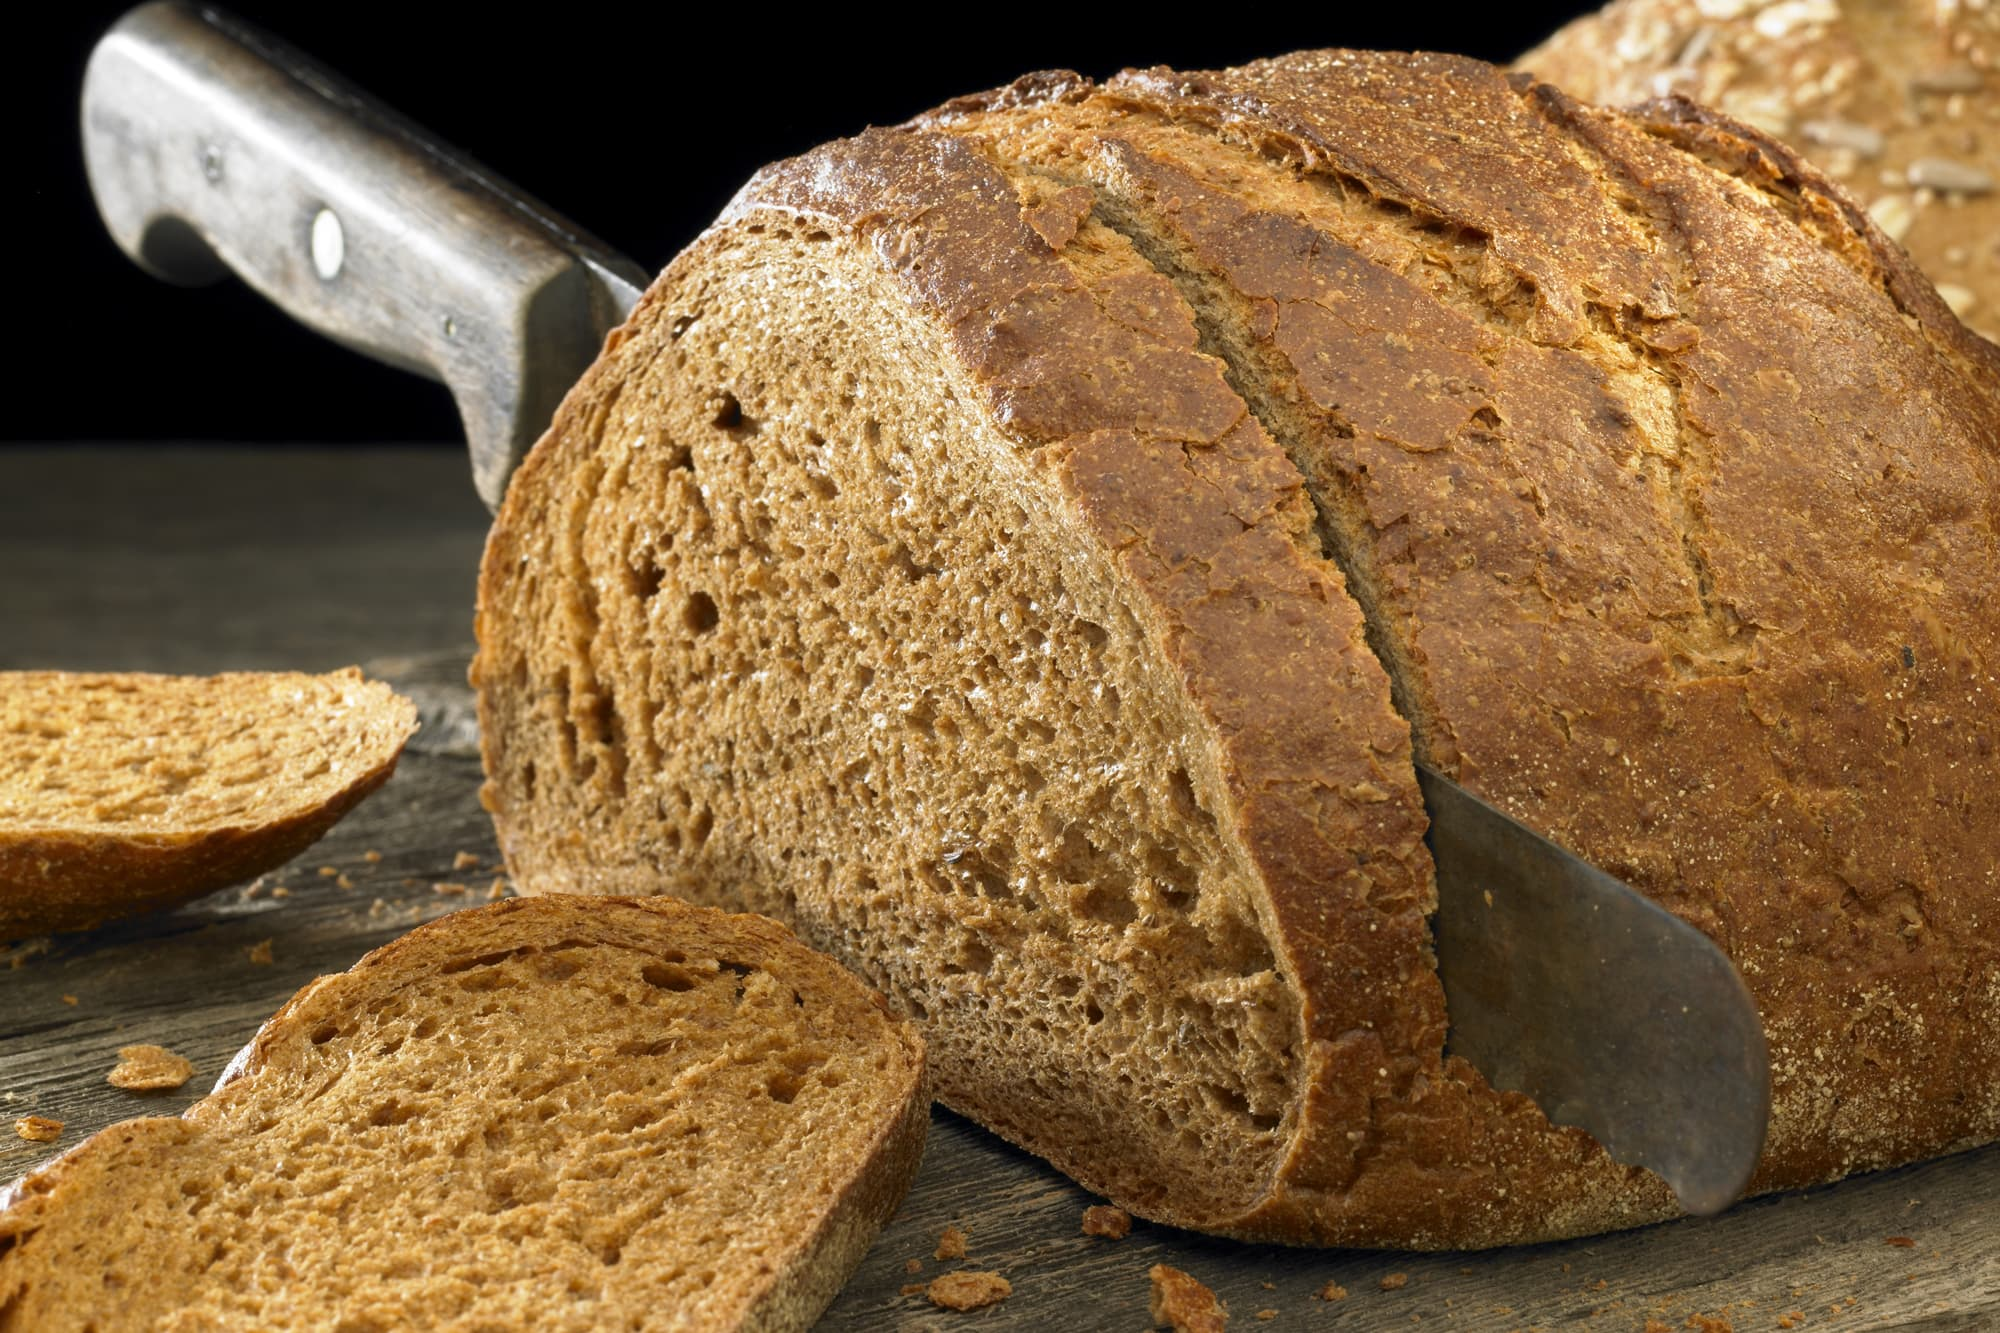 How sourdough bread is staging a comeback amid a stagnant US bread industry